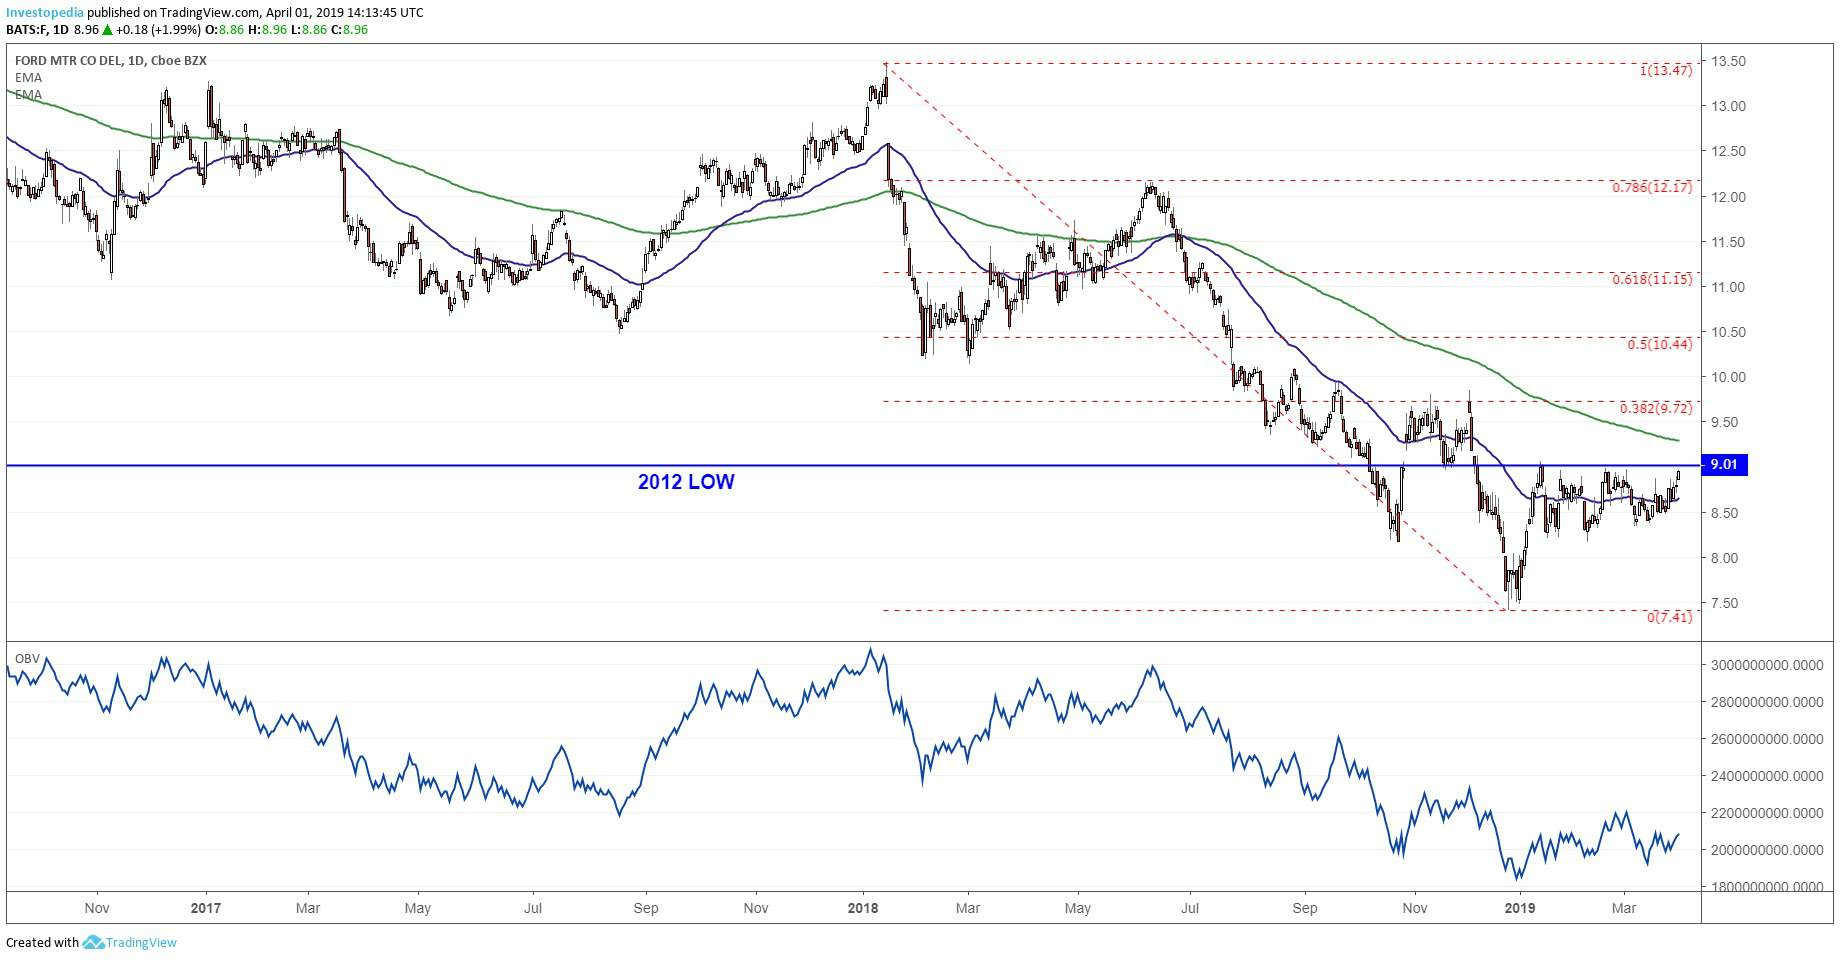 short-term technical chart showing the share price performance of ford motor  company (f